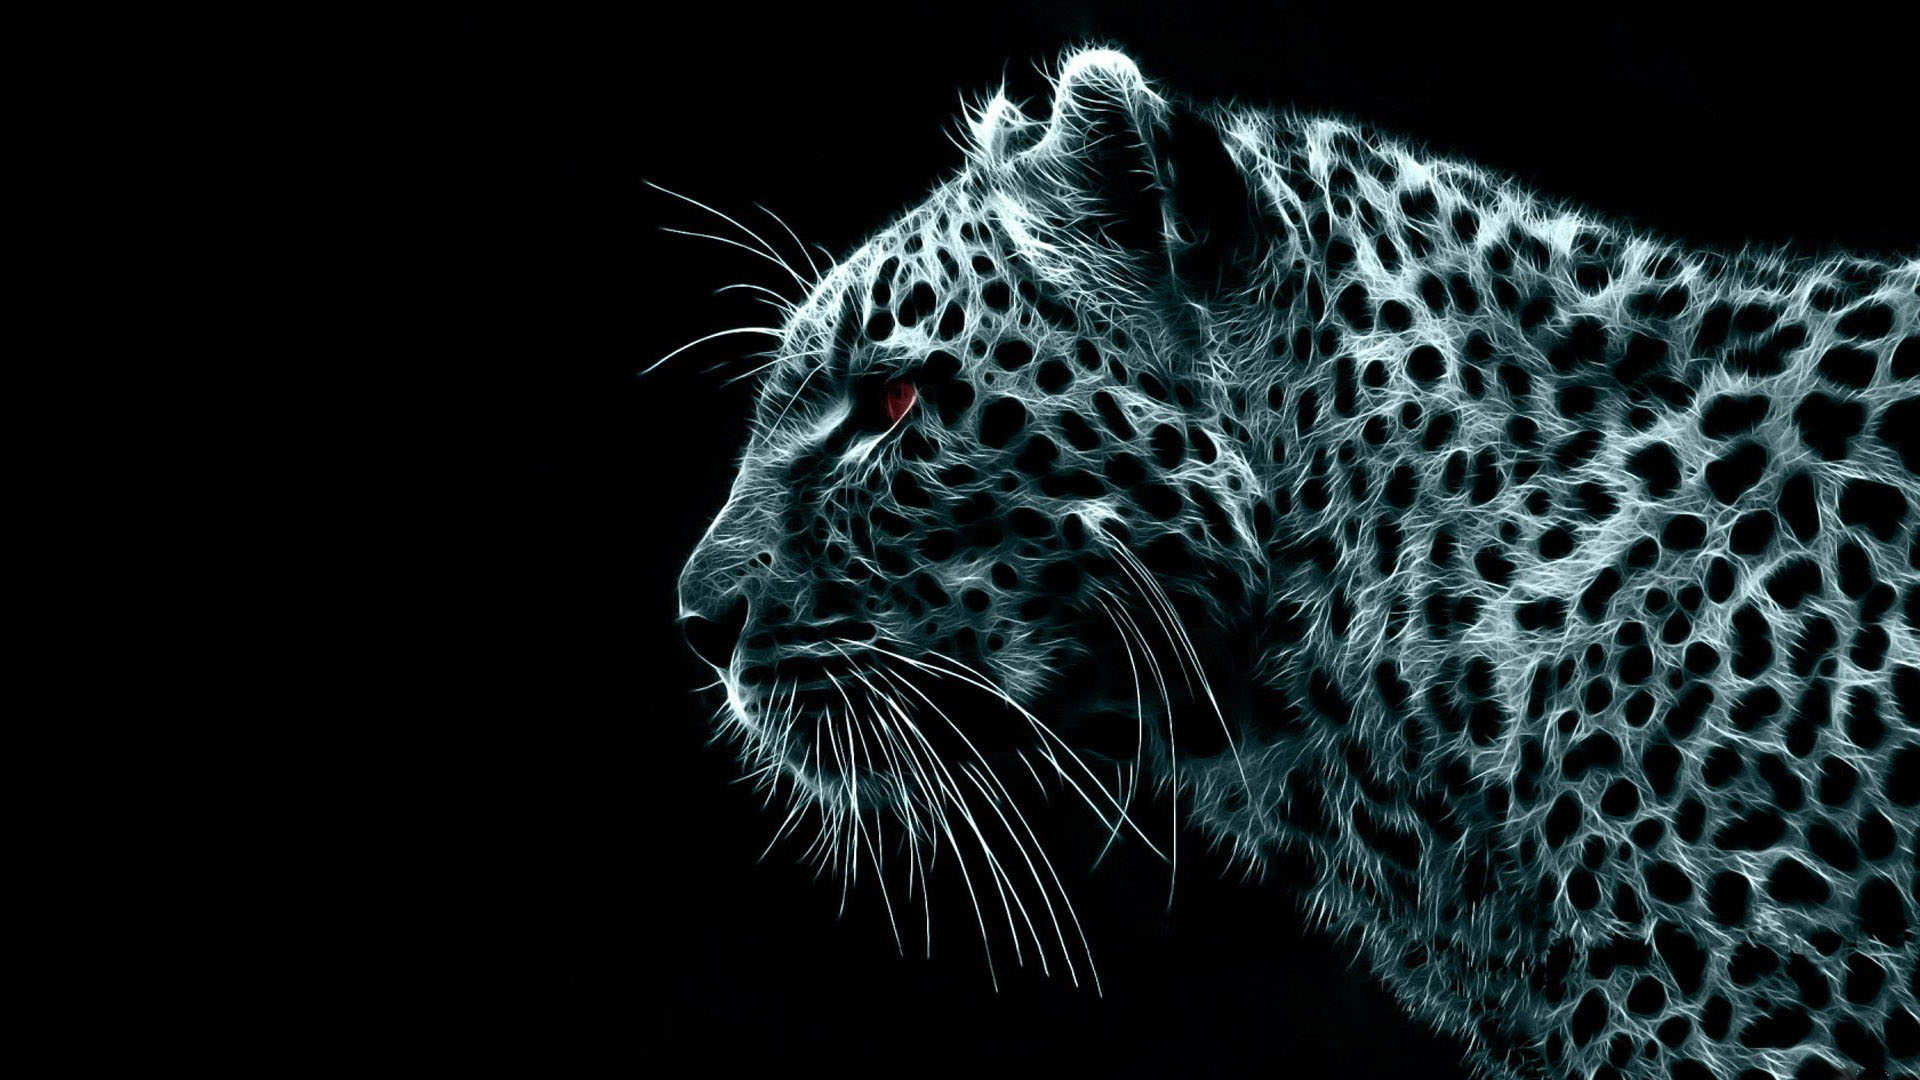 Digital Leopard Dark Wireframe 1920x1080 HD Image Abstract 3D 1920x1080